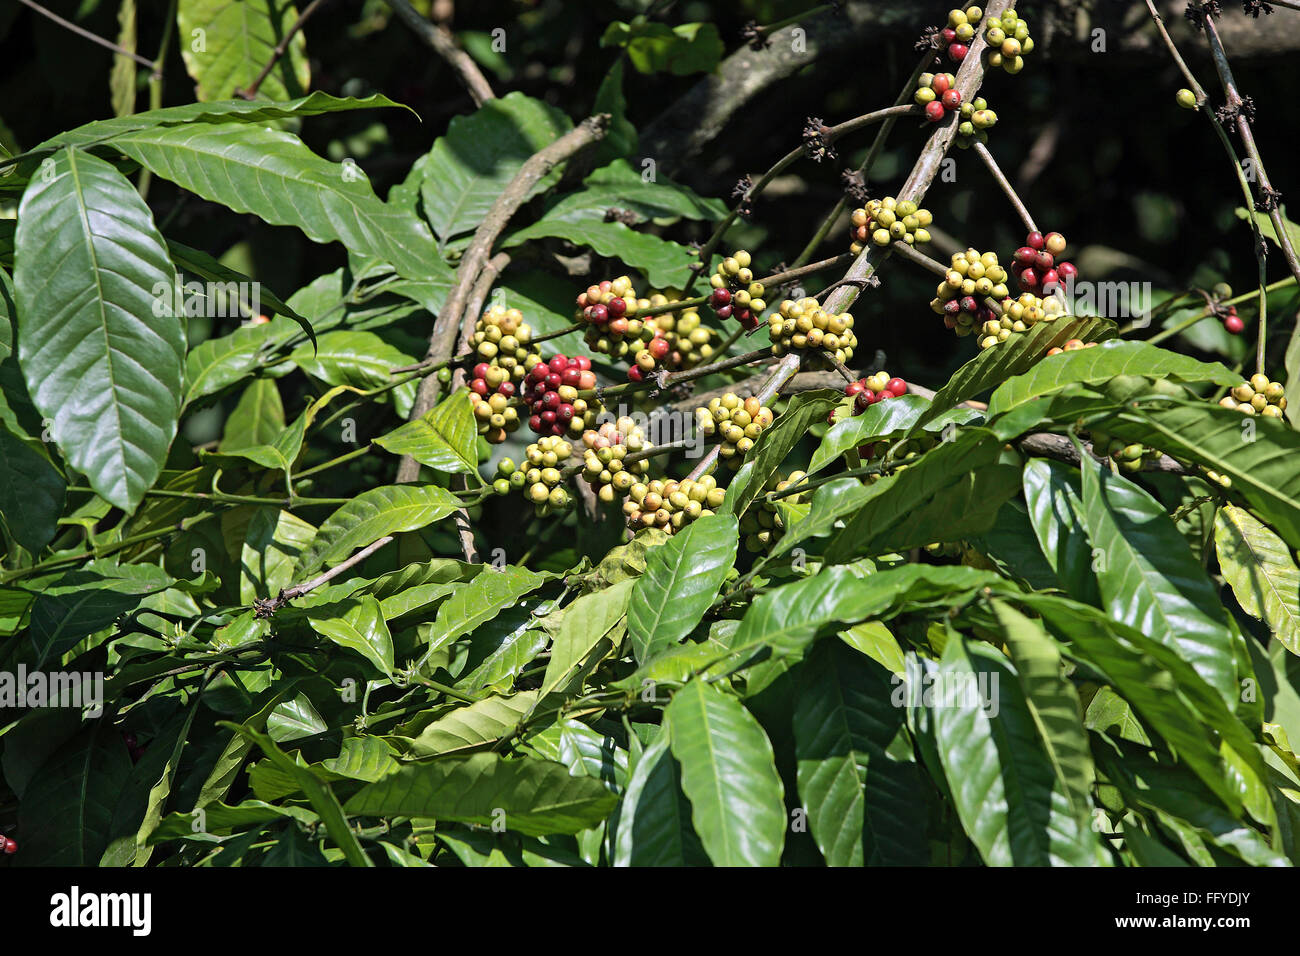 Coffee plant with berries arabica ; Thekkady Thekkadi ; District Idukki ; Kerala ; India Stock Photo